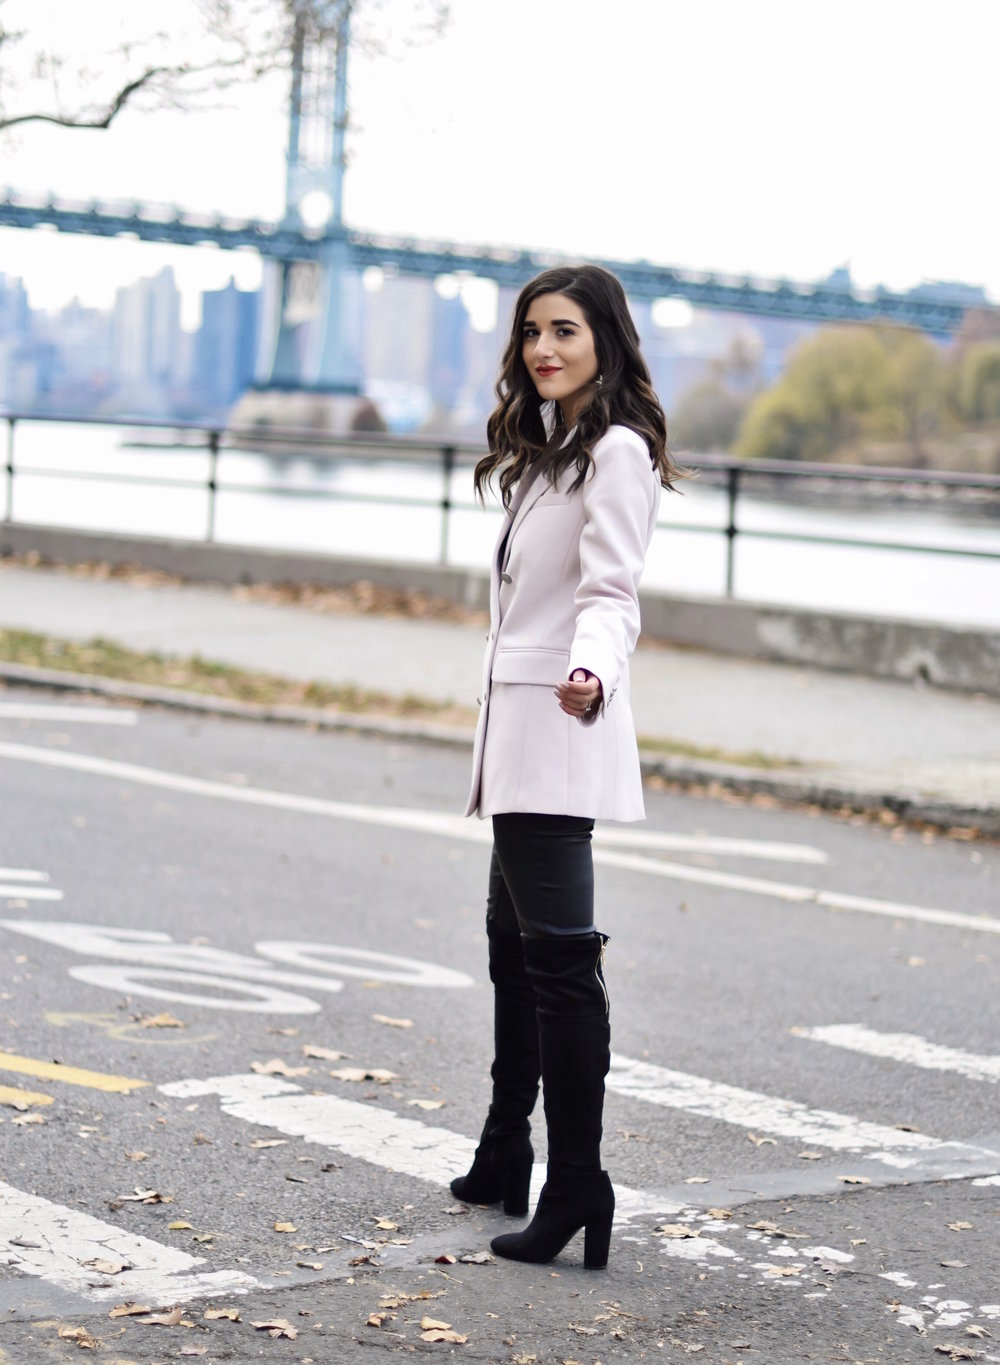 Why Some Bloggers Beg You To Like Their Photos Light Pink Blazer Leather Leggings Esther Santer Fashion Blog NYC Street Style Blogger Outfit OOTD Trendy Rachel Roy Black Over The Knee Boot Girl Women Astoria Photoshoot Winter Fall Shopping Sale Jacket.jpg